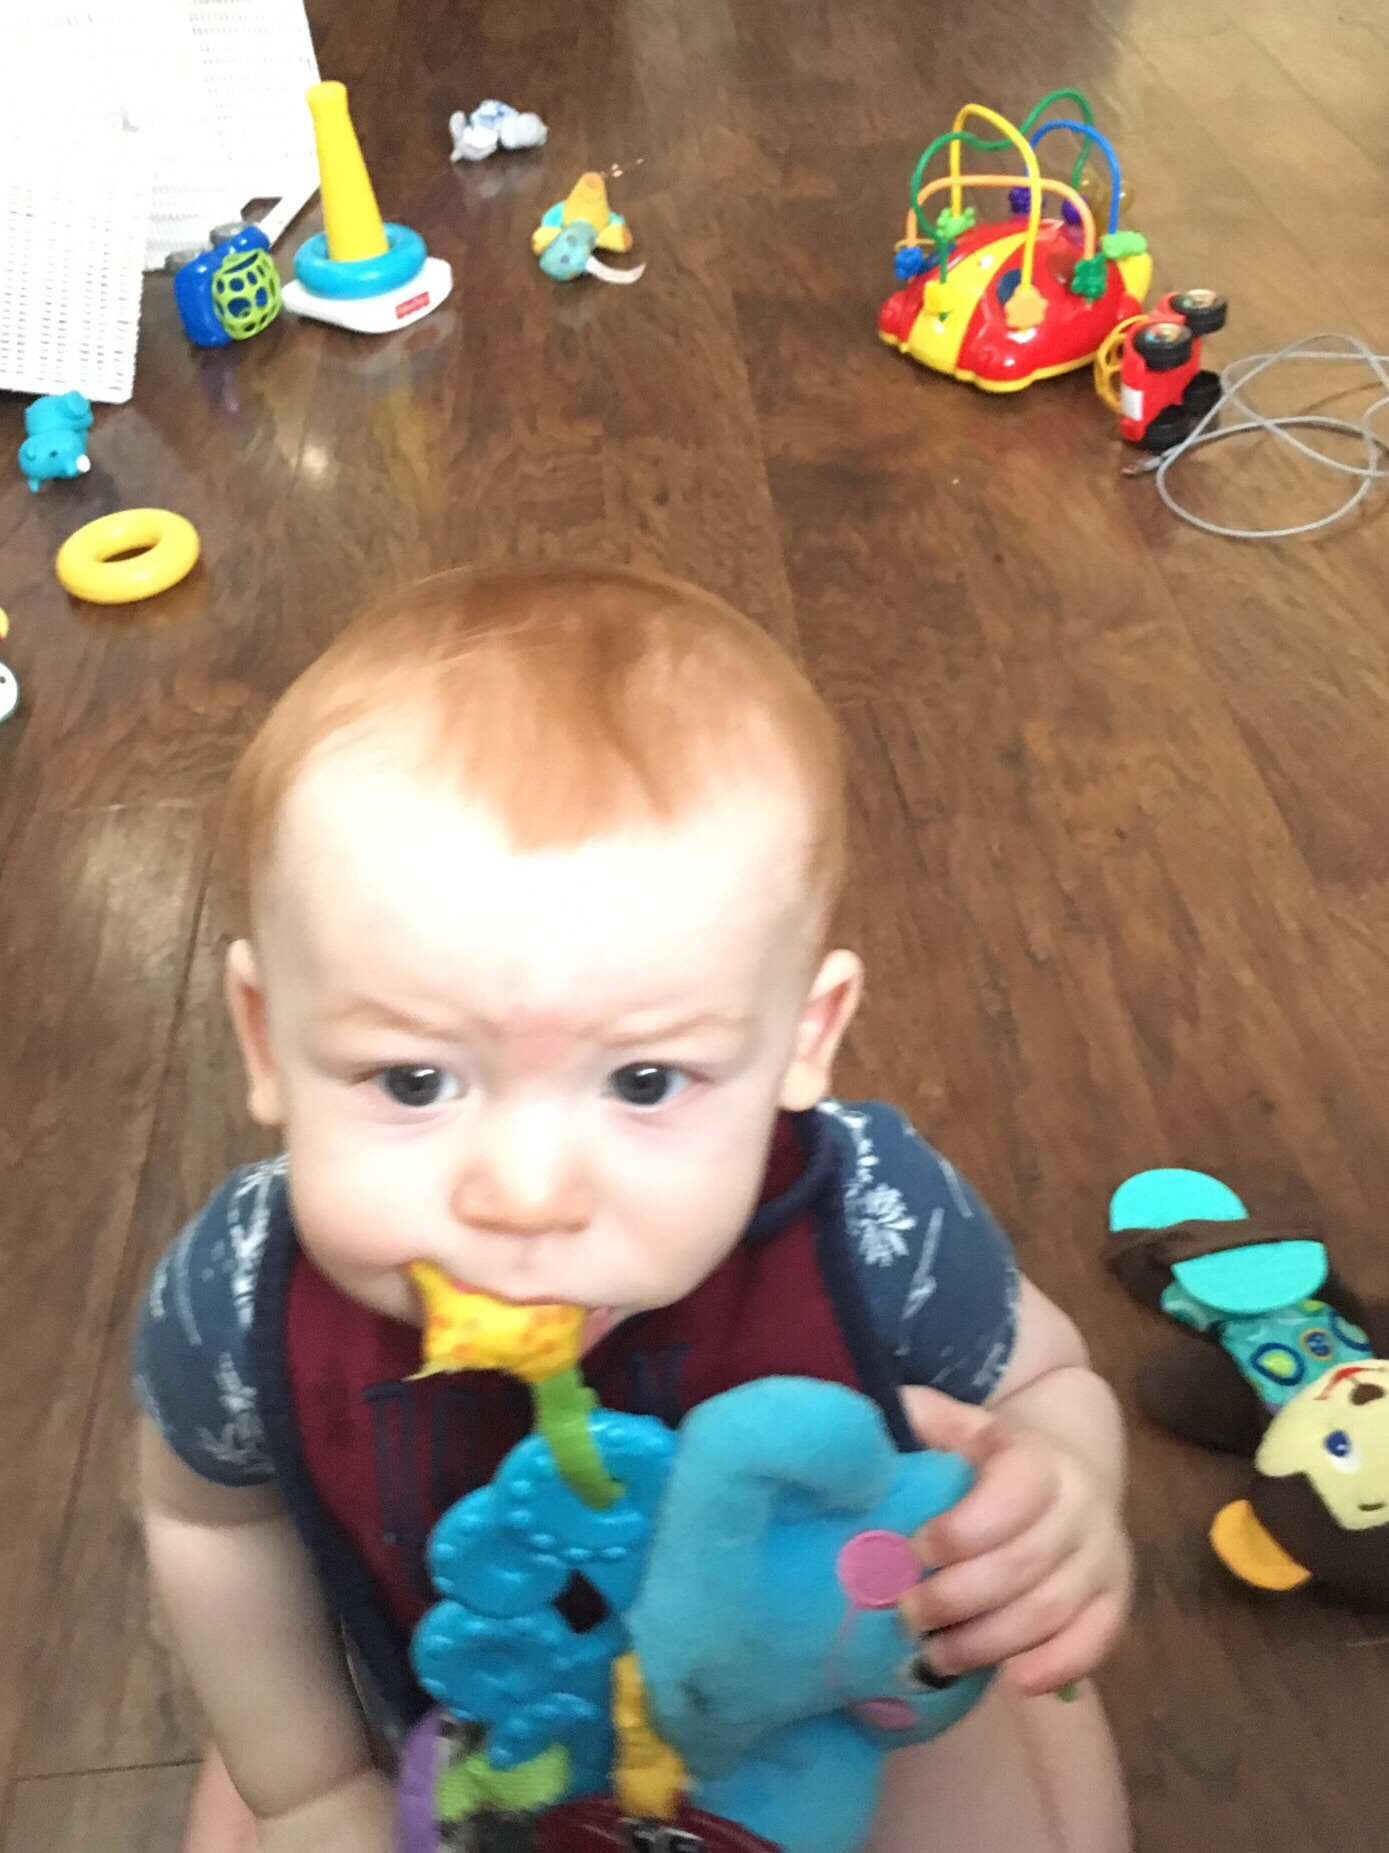 Joshua in a mess of toys